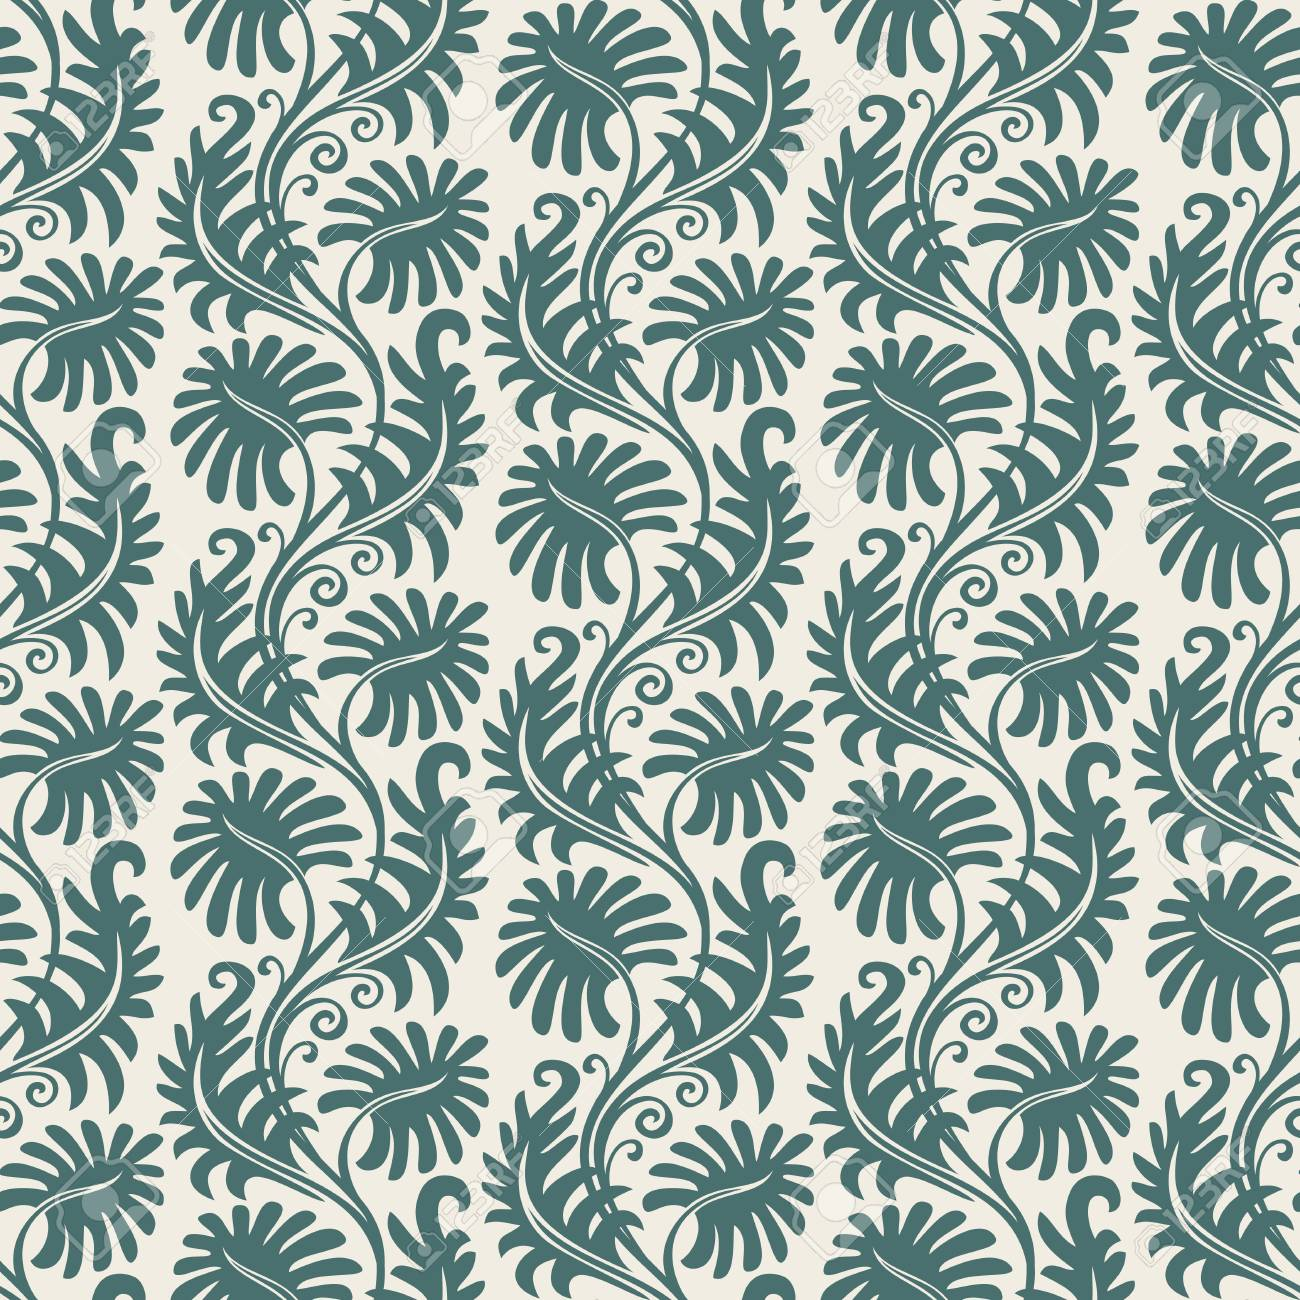 Seamless background from a floral ornament, Fashionable modern wallpaper or textile Stock Vector - 4951849